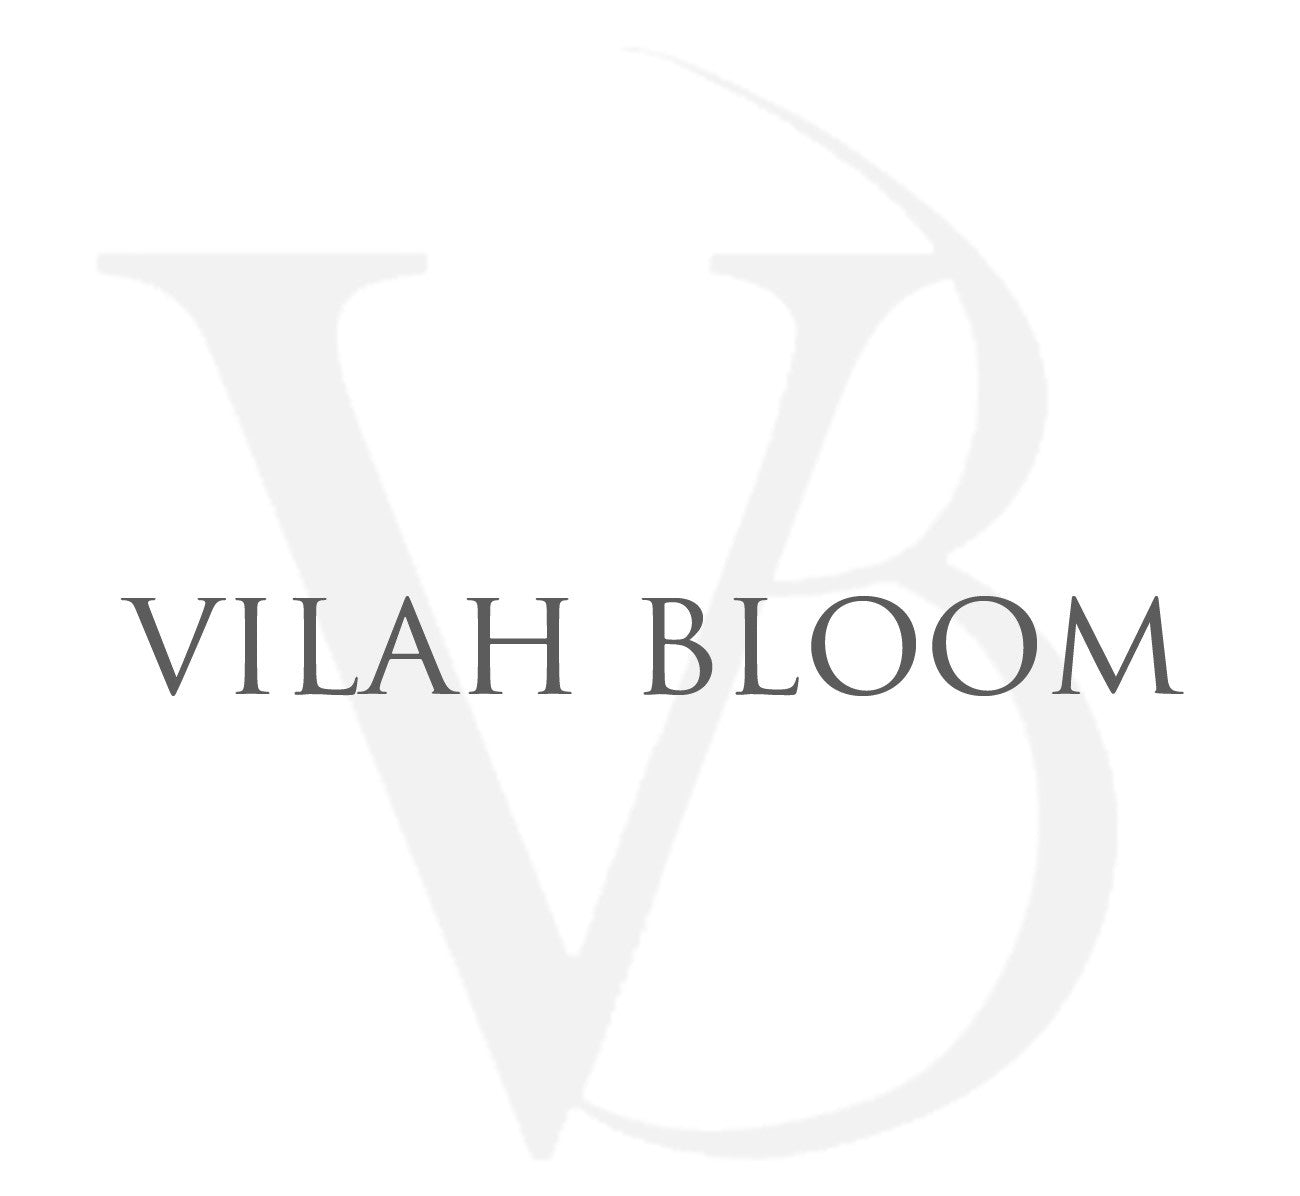 Vilah Bloom